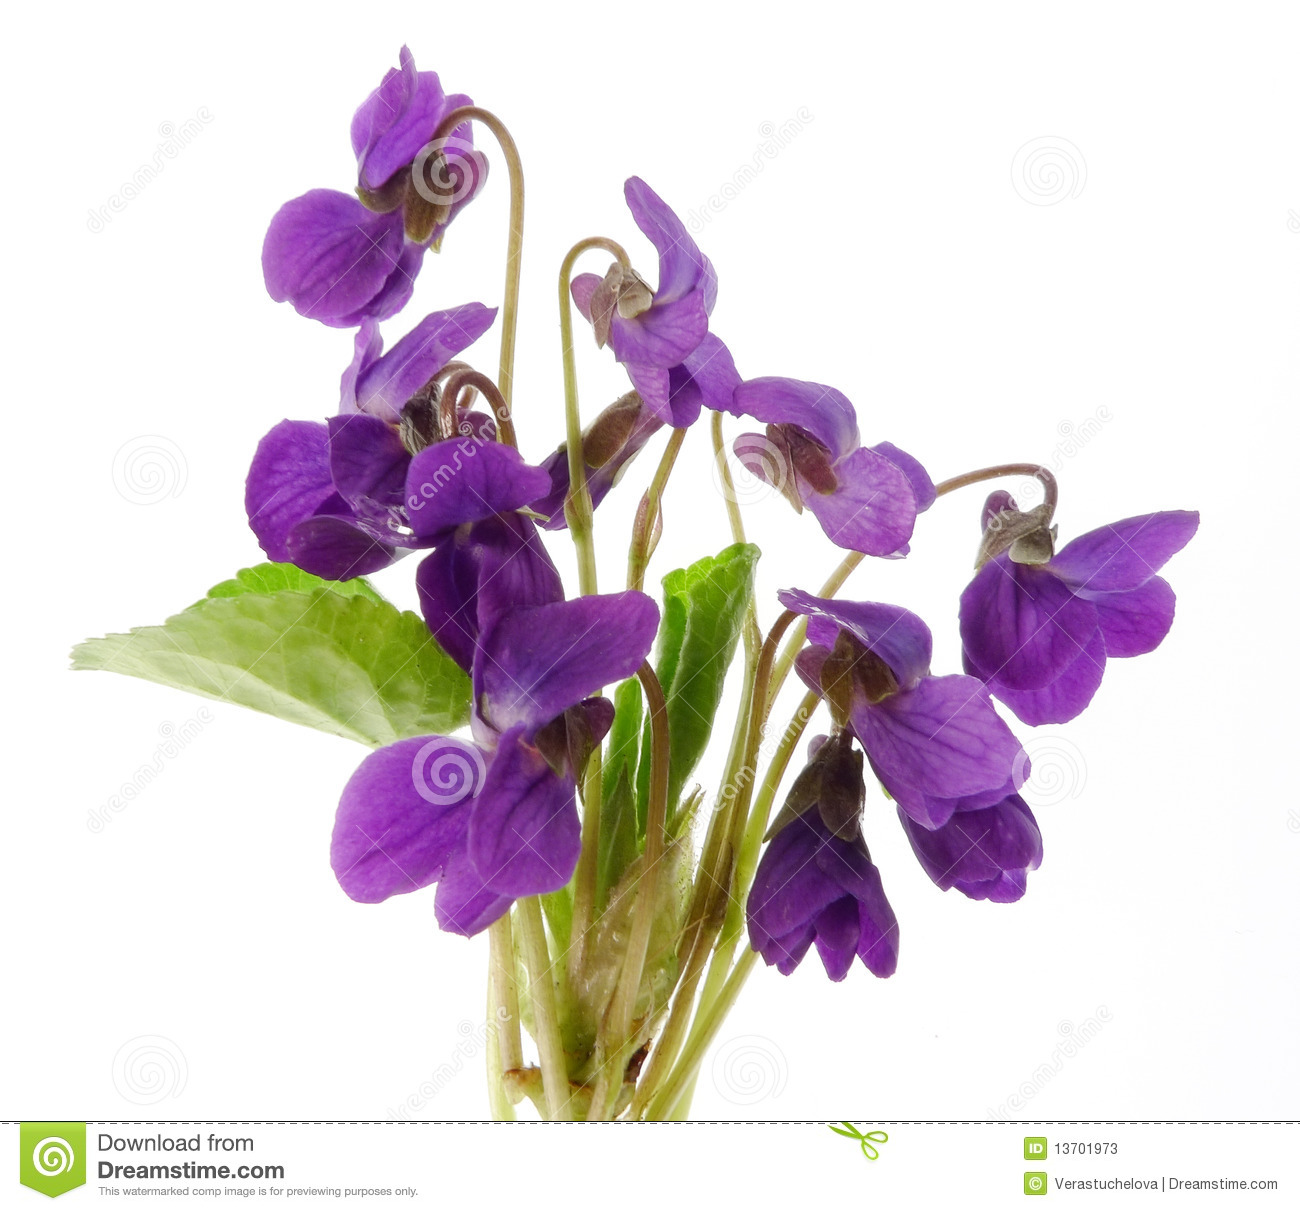 bouquet of violets on white background stock image image of meadow bouquet 13701973. Black Bedroom Furniture Sets. Home Design Ideas